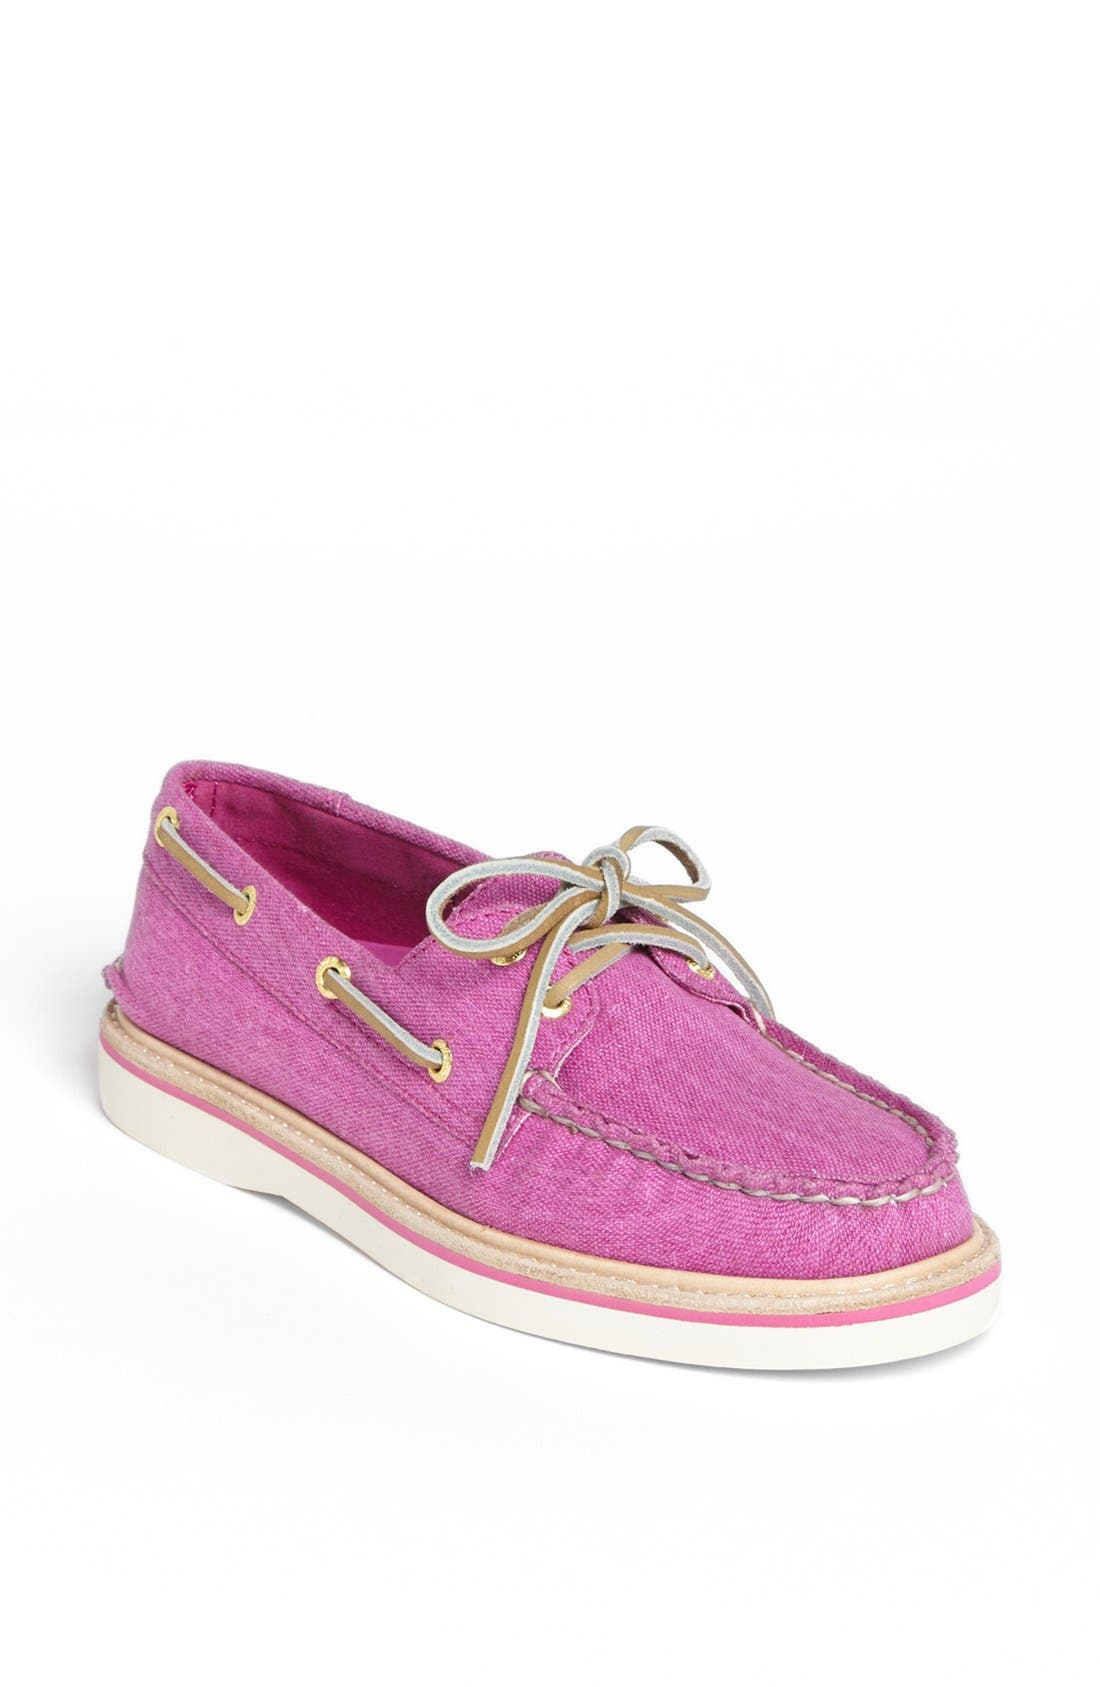 Alternate Image 1 Selected - Sperry Top-Sider® 'Grayson' Canvas Boat Shoe